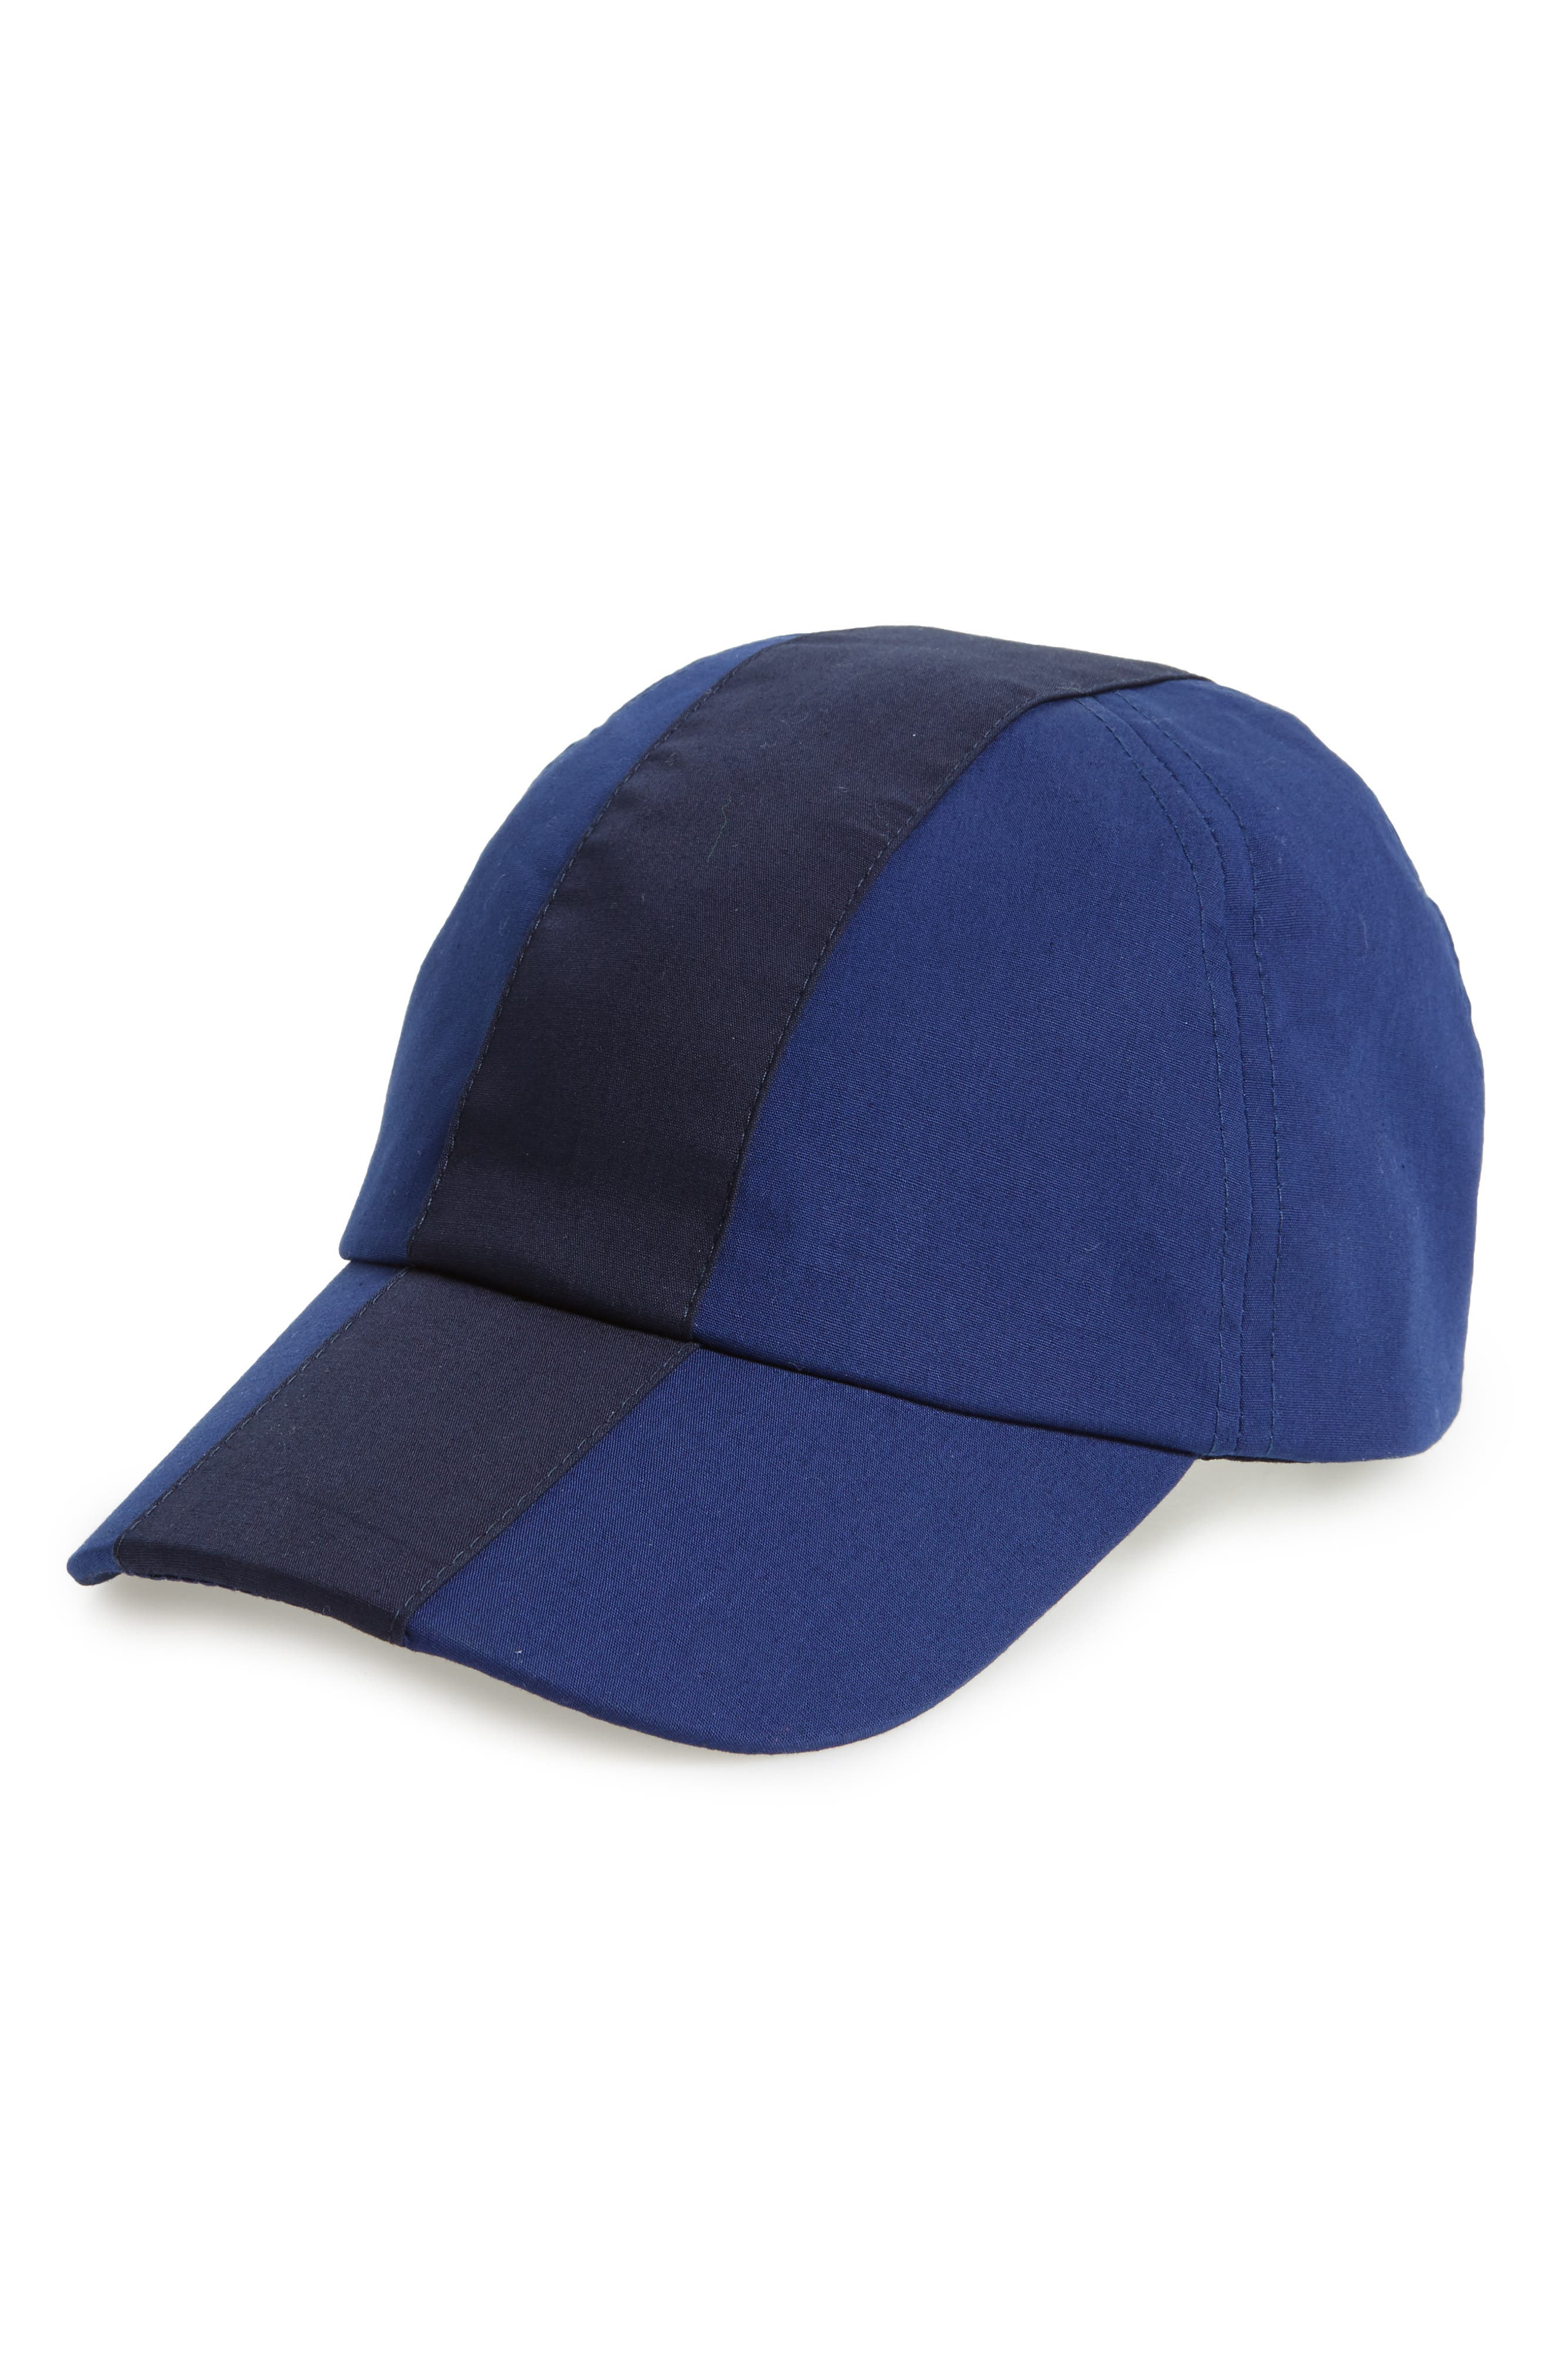 Alternate Image 1 Selected - Lacoste Colorblock Baseball Cap